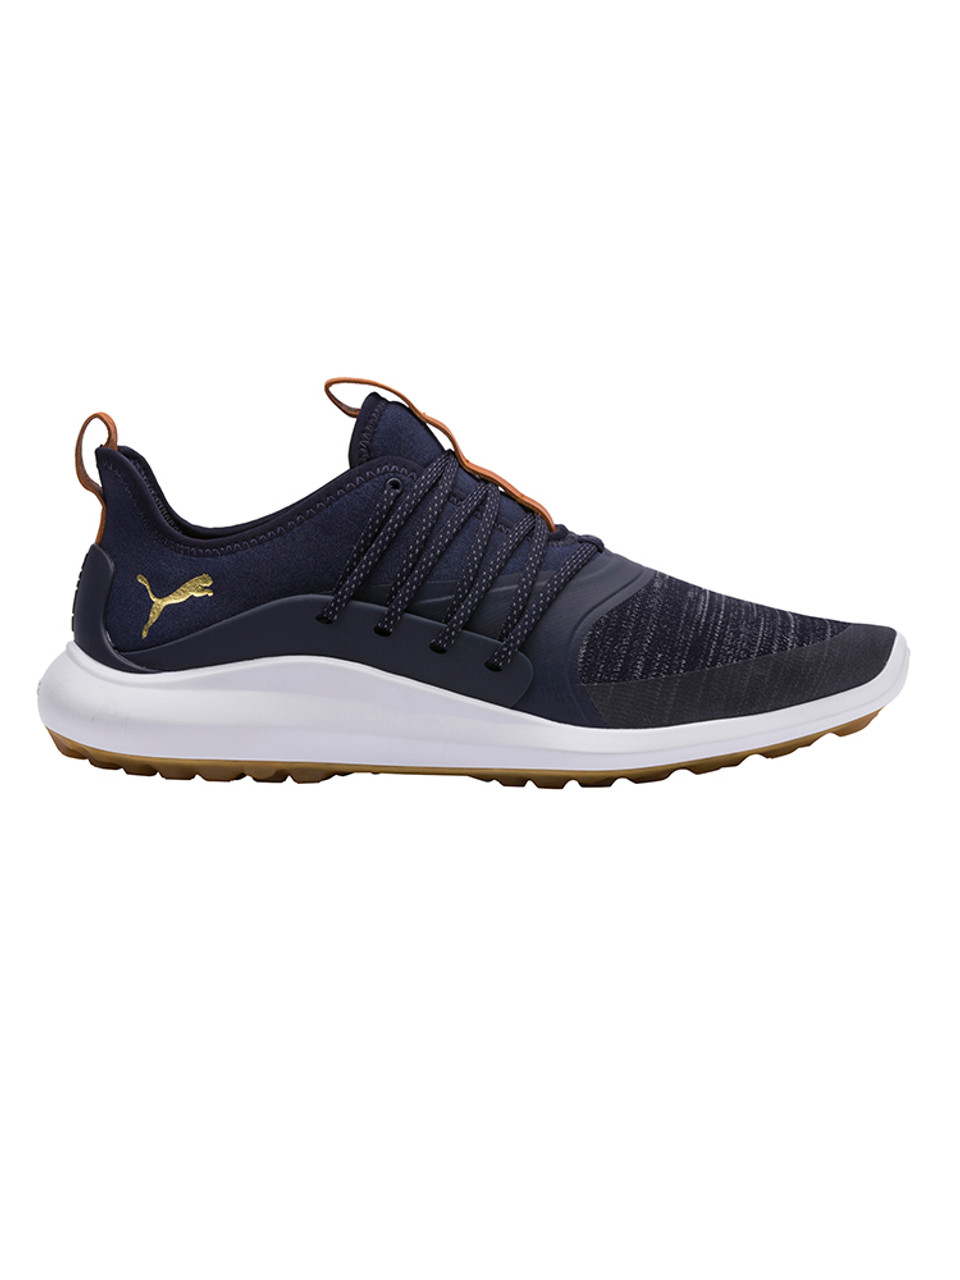 Puma Ignite NXT Solelace Golf Shoes PeacoatGold